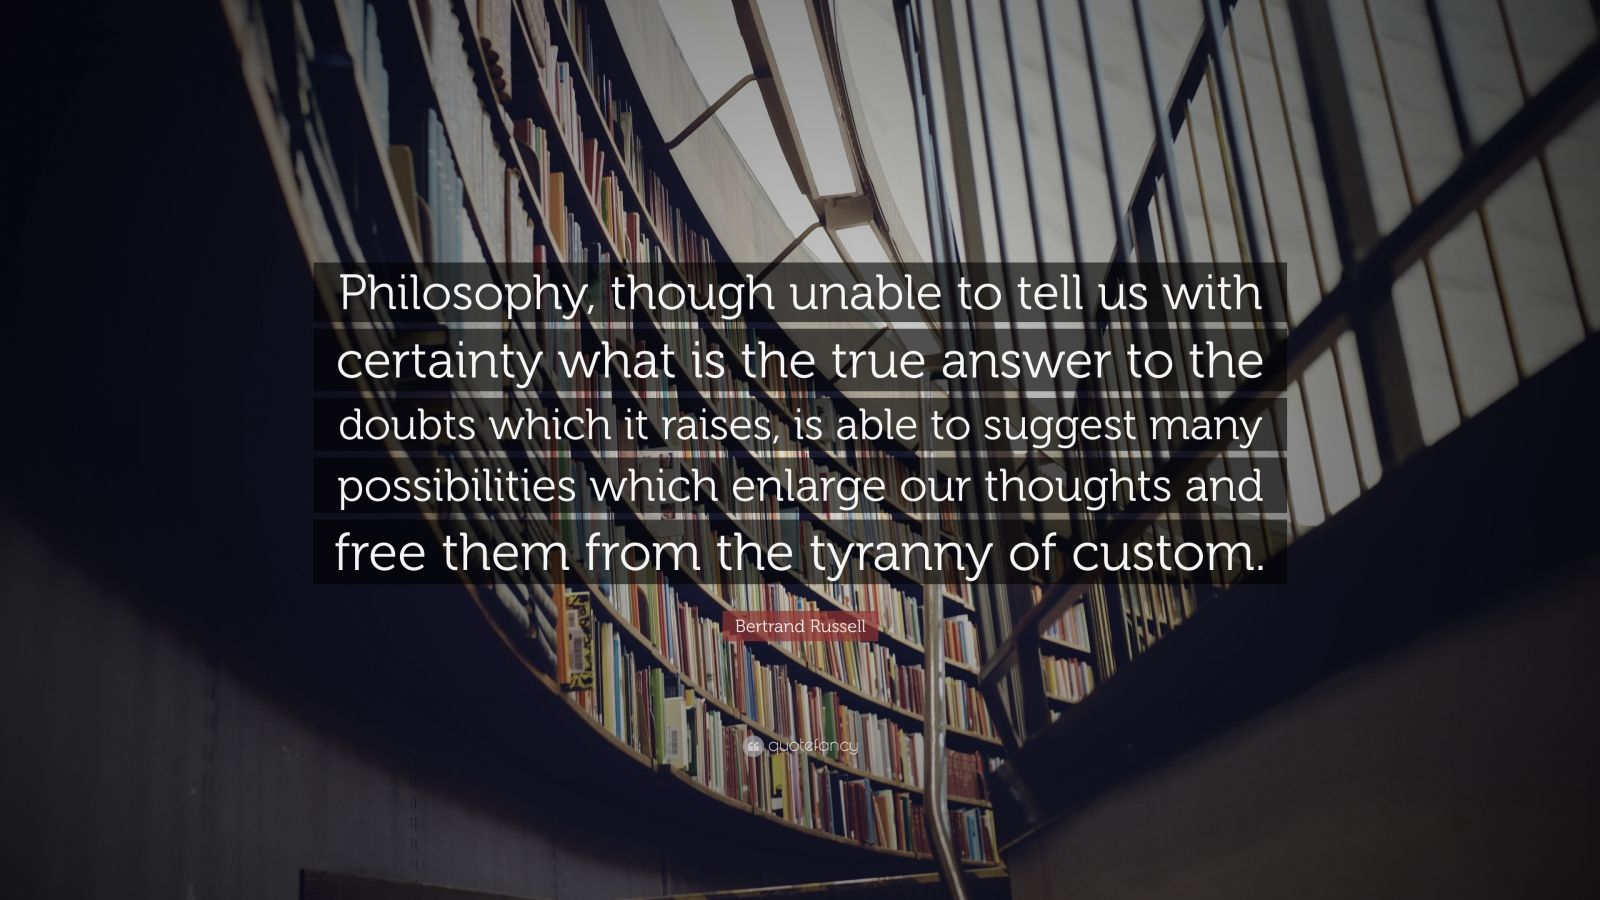 """Bertrand Russell Quote: """"Philosophy, though unable to tell us with certainty what is the true answer to the doubts which it raises, is able to suggest many possibilities which enlarge our thoughts and free them from the tyranny of custom."""""""